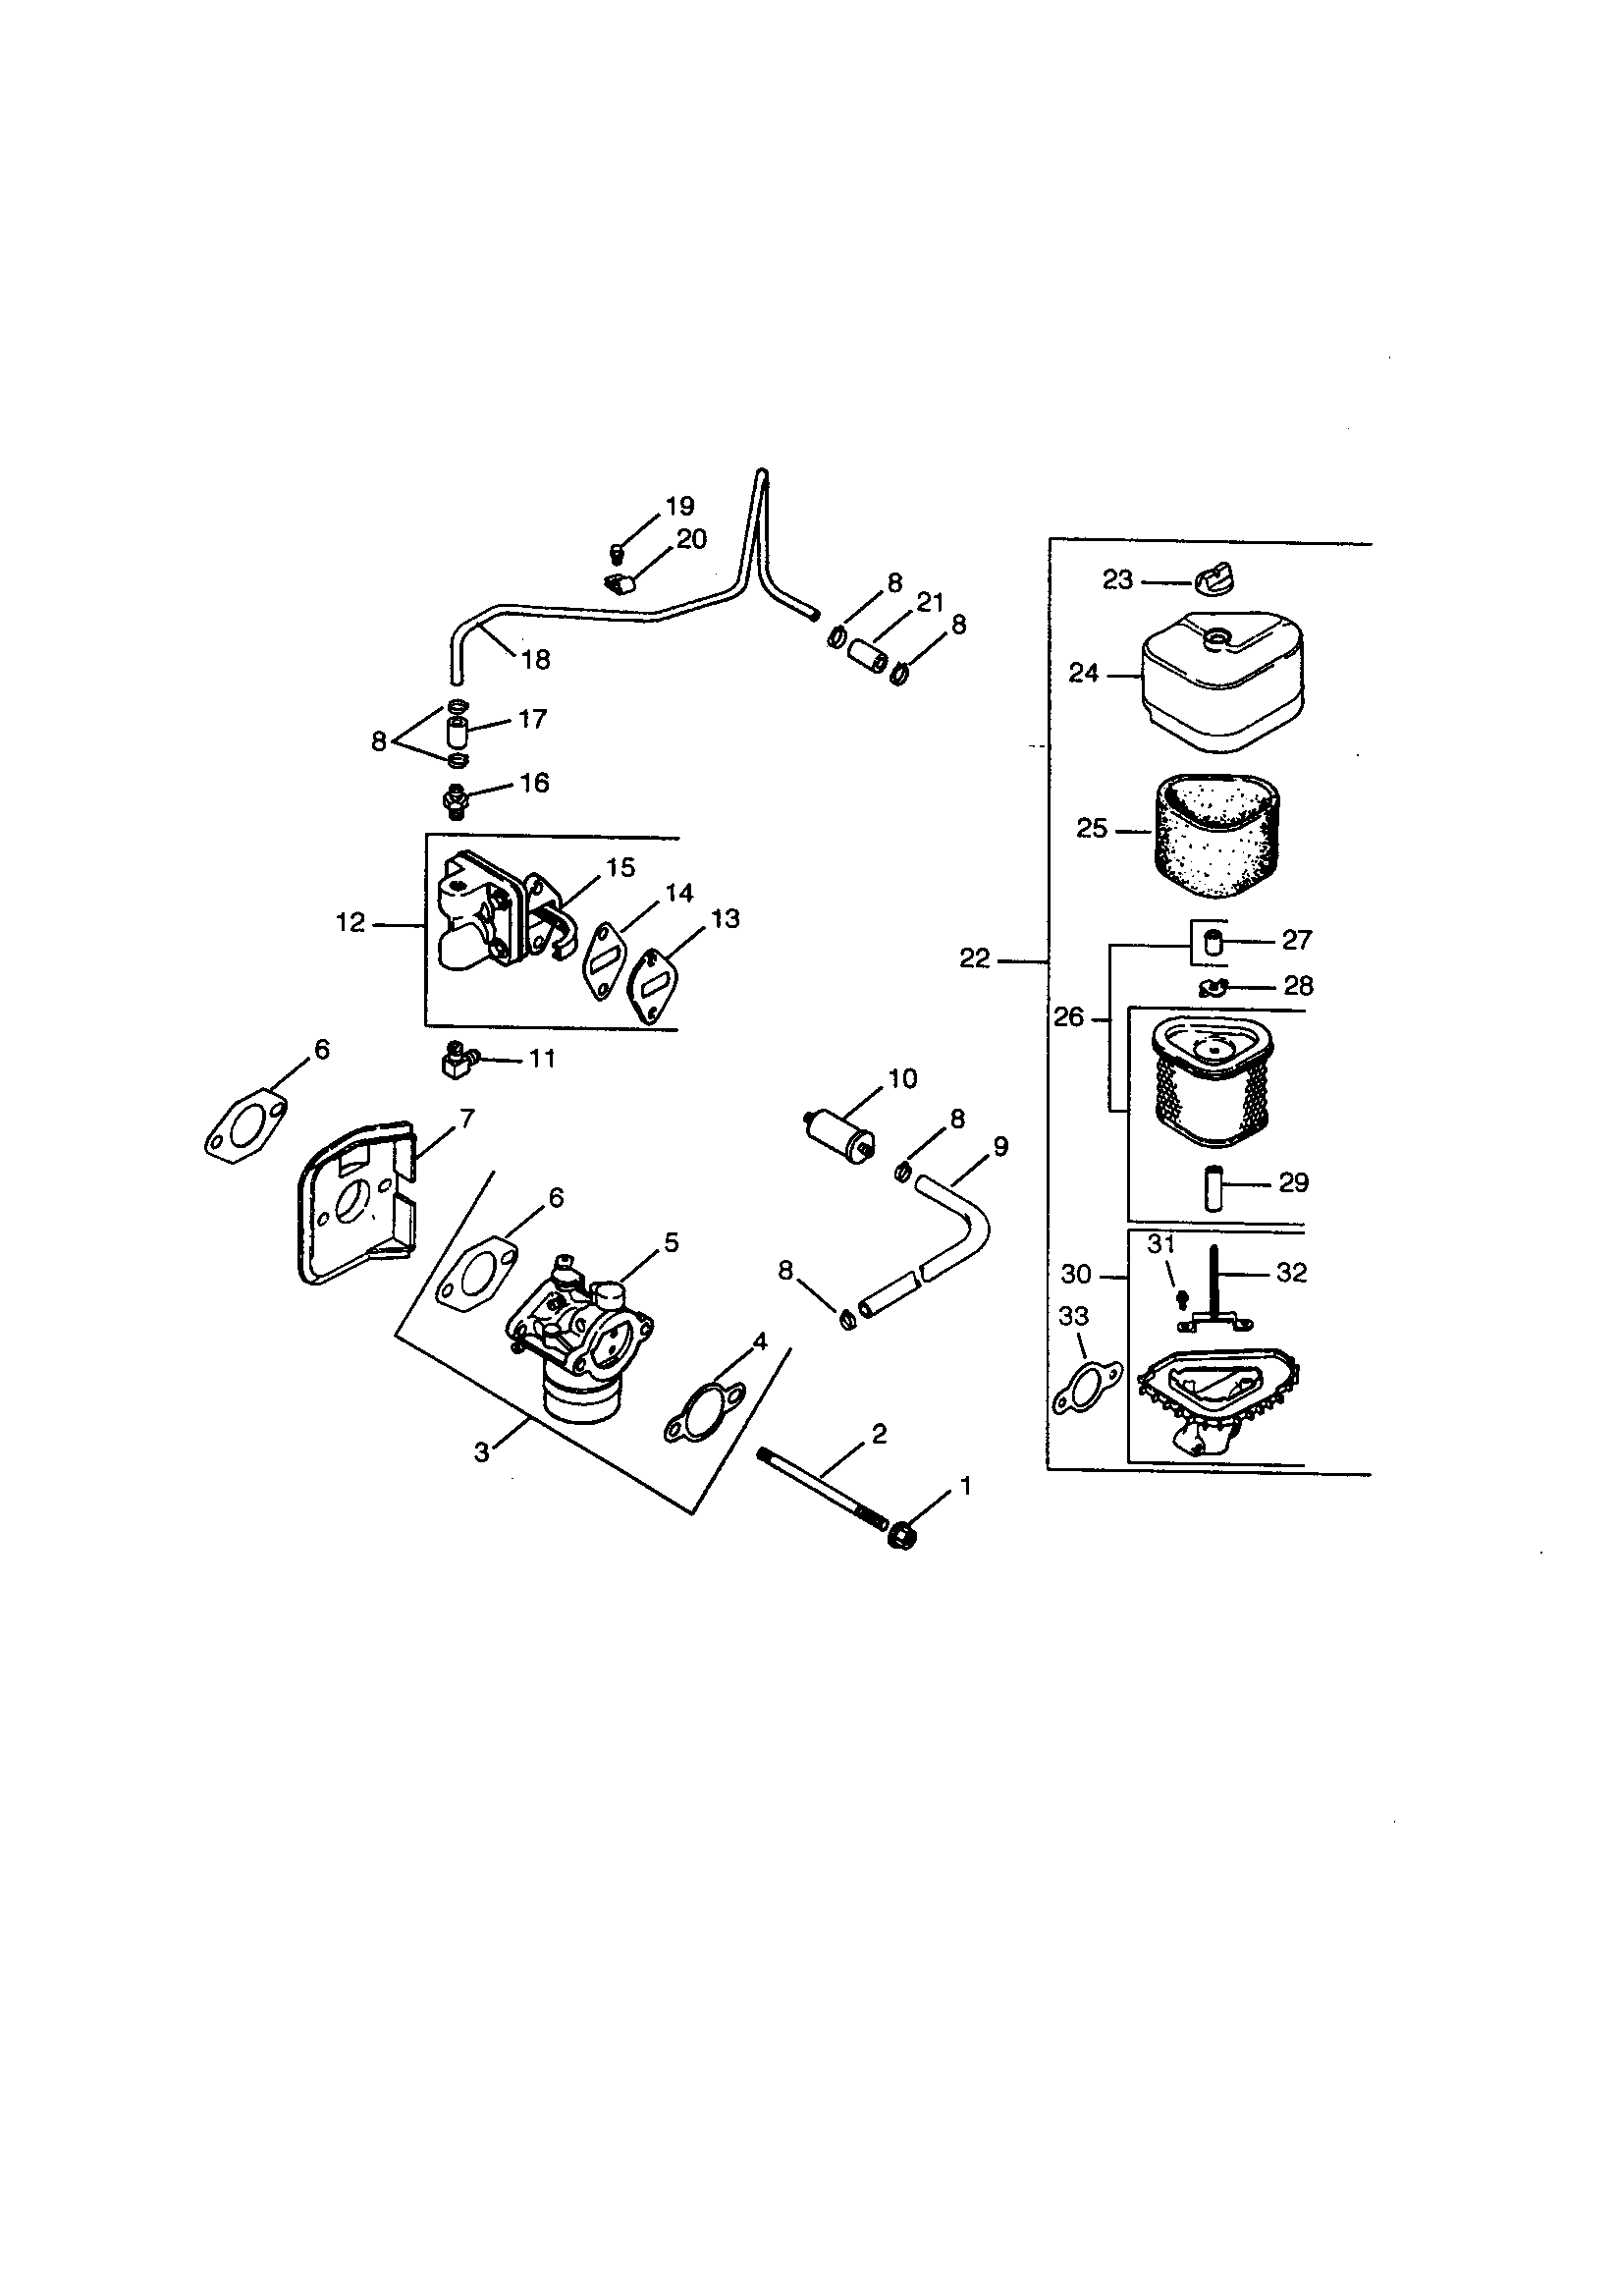 hight resolution of kohler cv15s ps41588 fuel and air system diagram